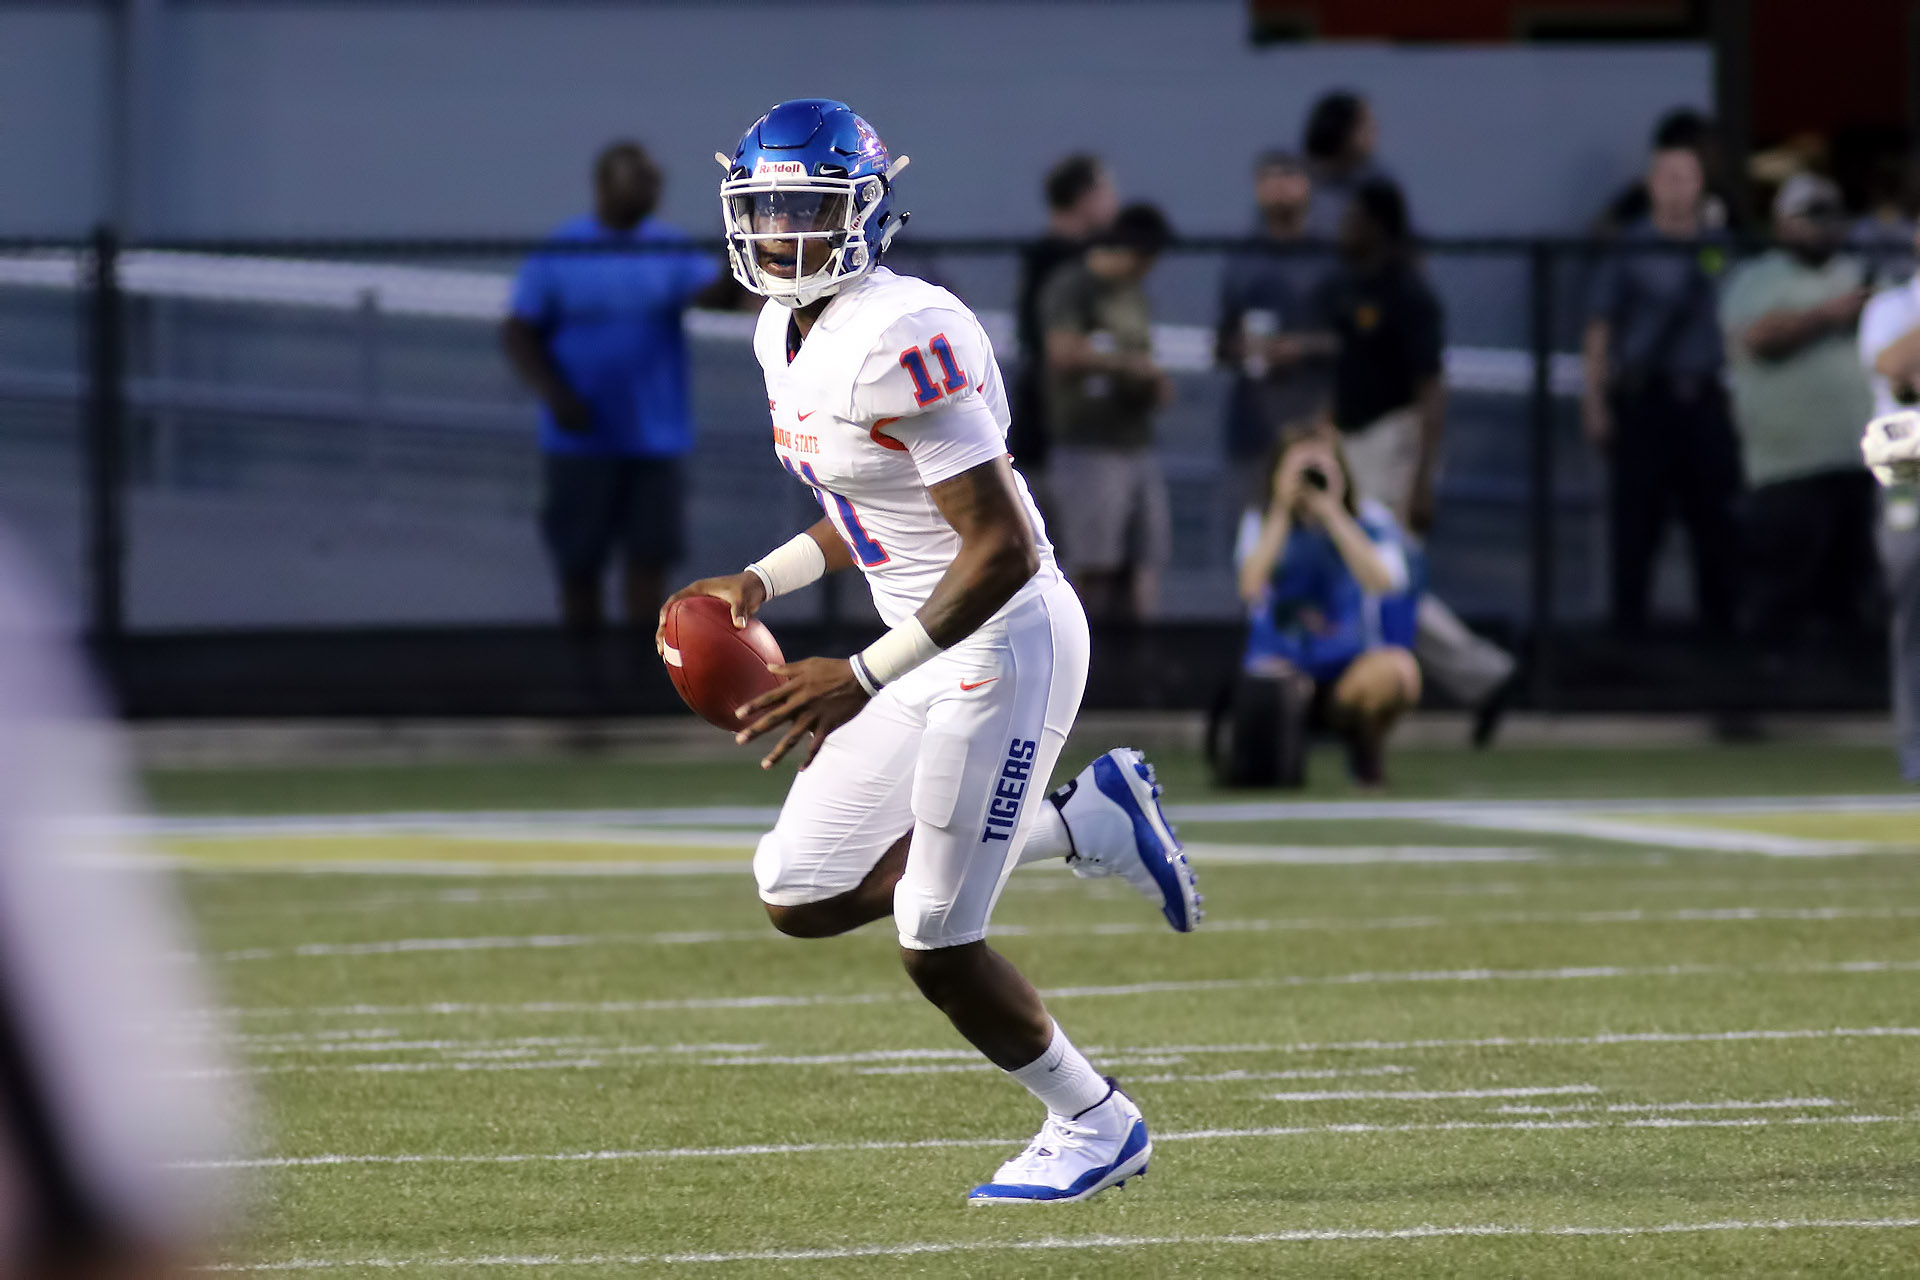 Tigers Fall To Famu In Meac Opener Savannah State University Athletics